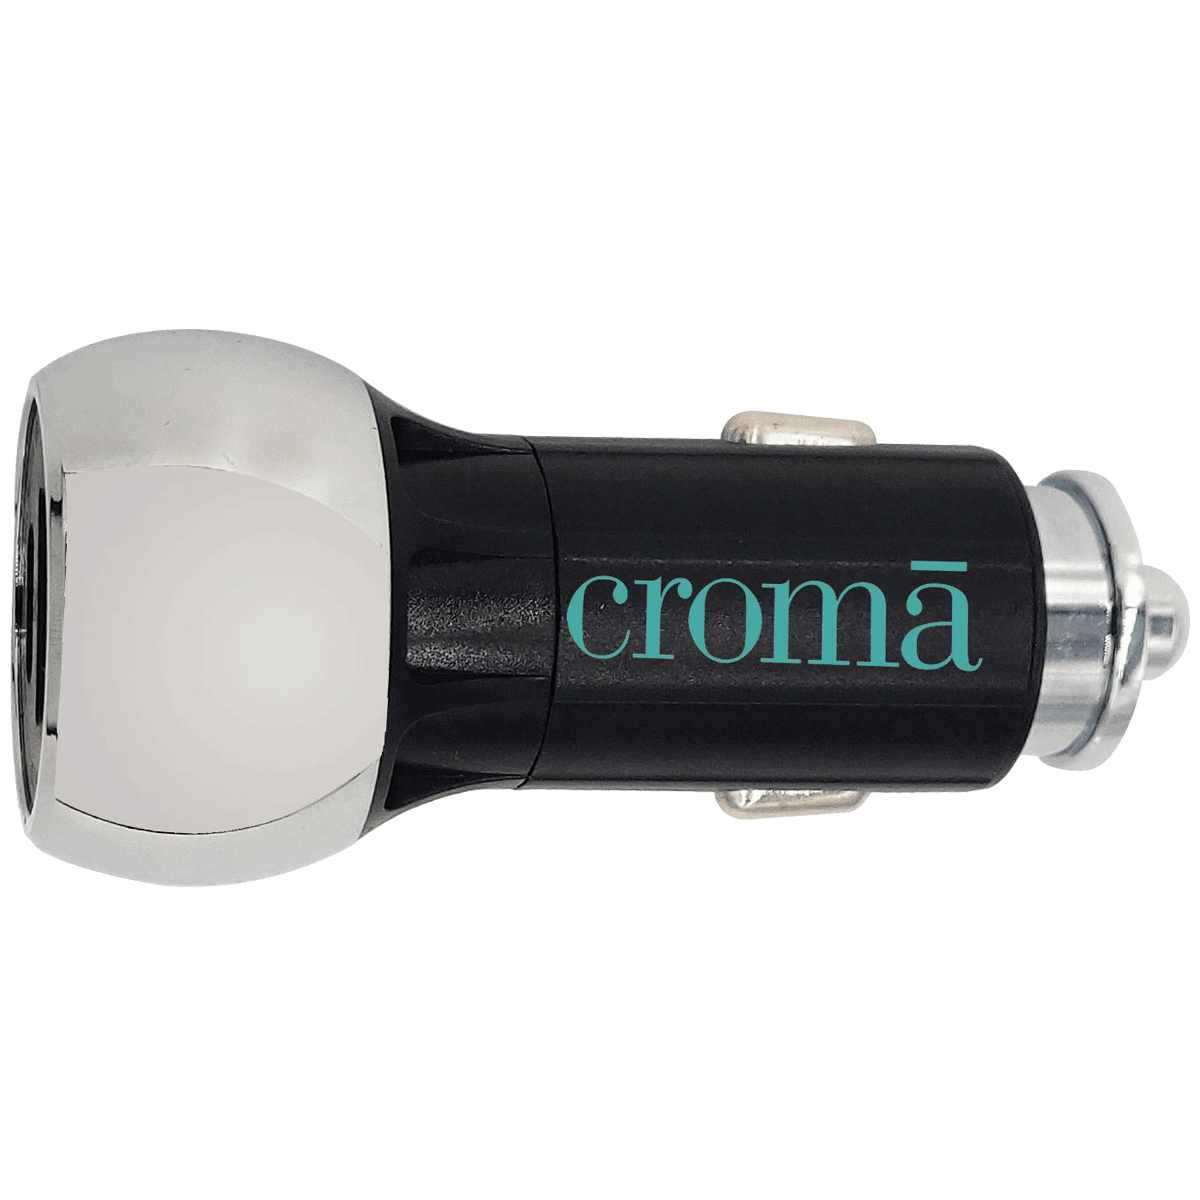 Croma 36 Watts 2 USB Ports Car Charging Adapter with Cable (Fast Charging, CRCA3000, Black)